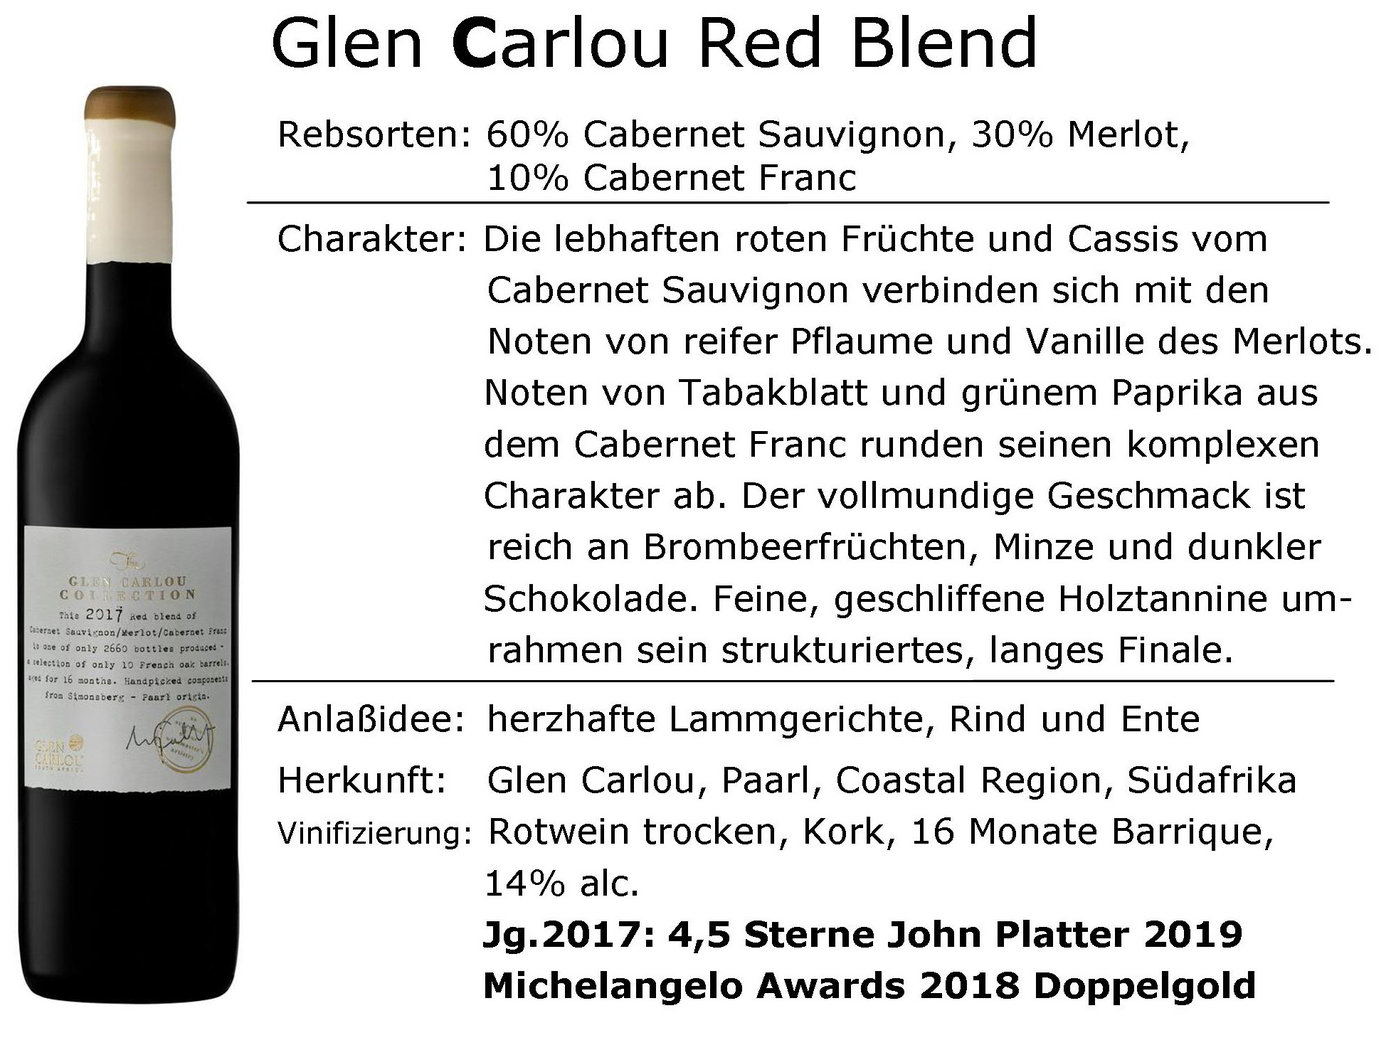 Glen Carlou Collection Red Blend 2017